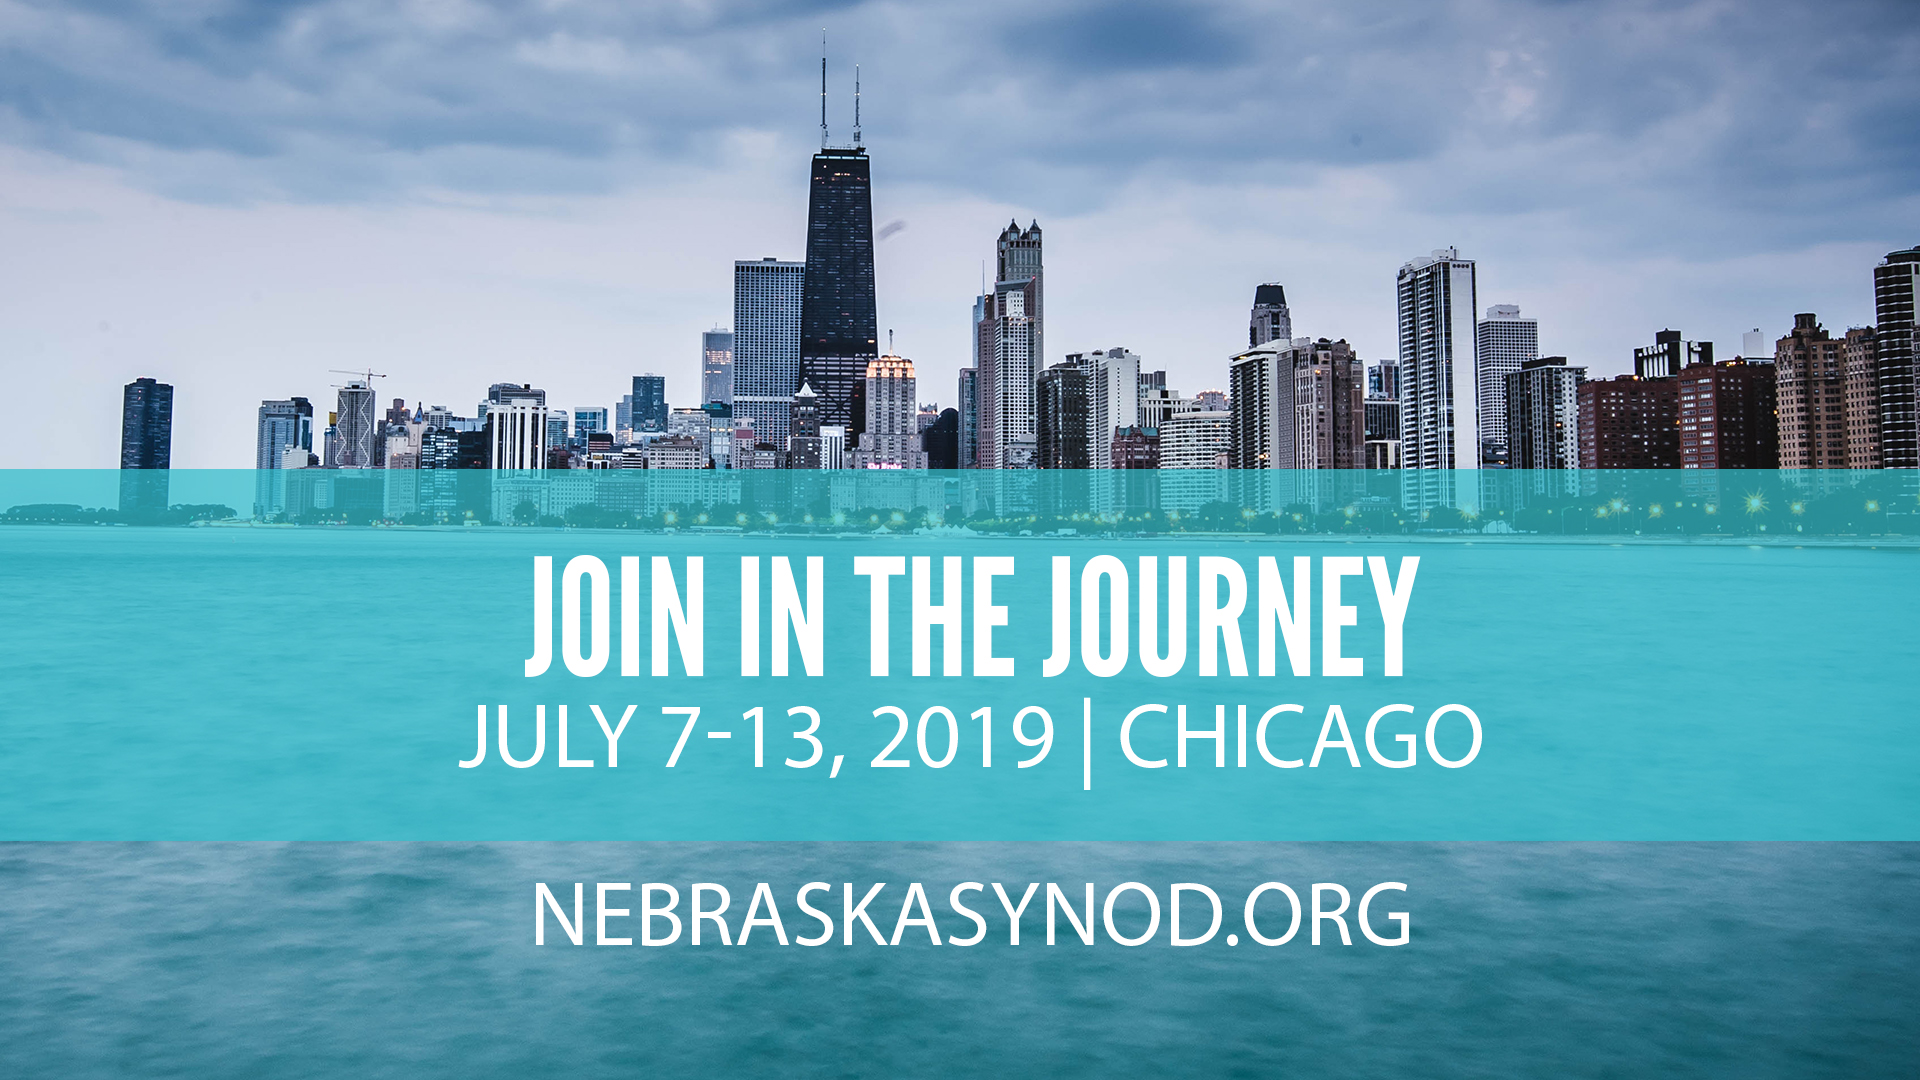 The Journey Chicago 2019